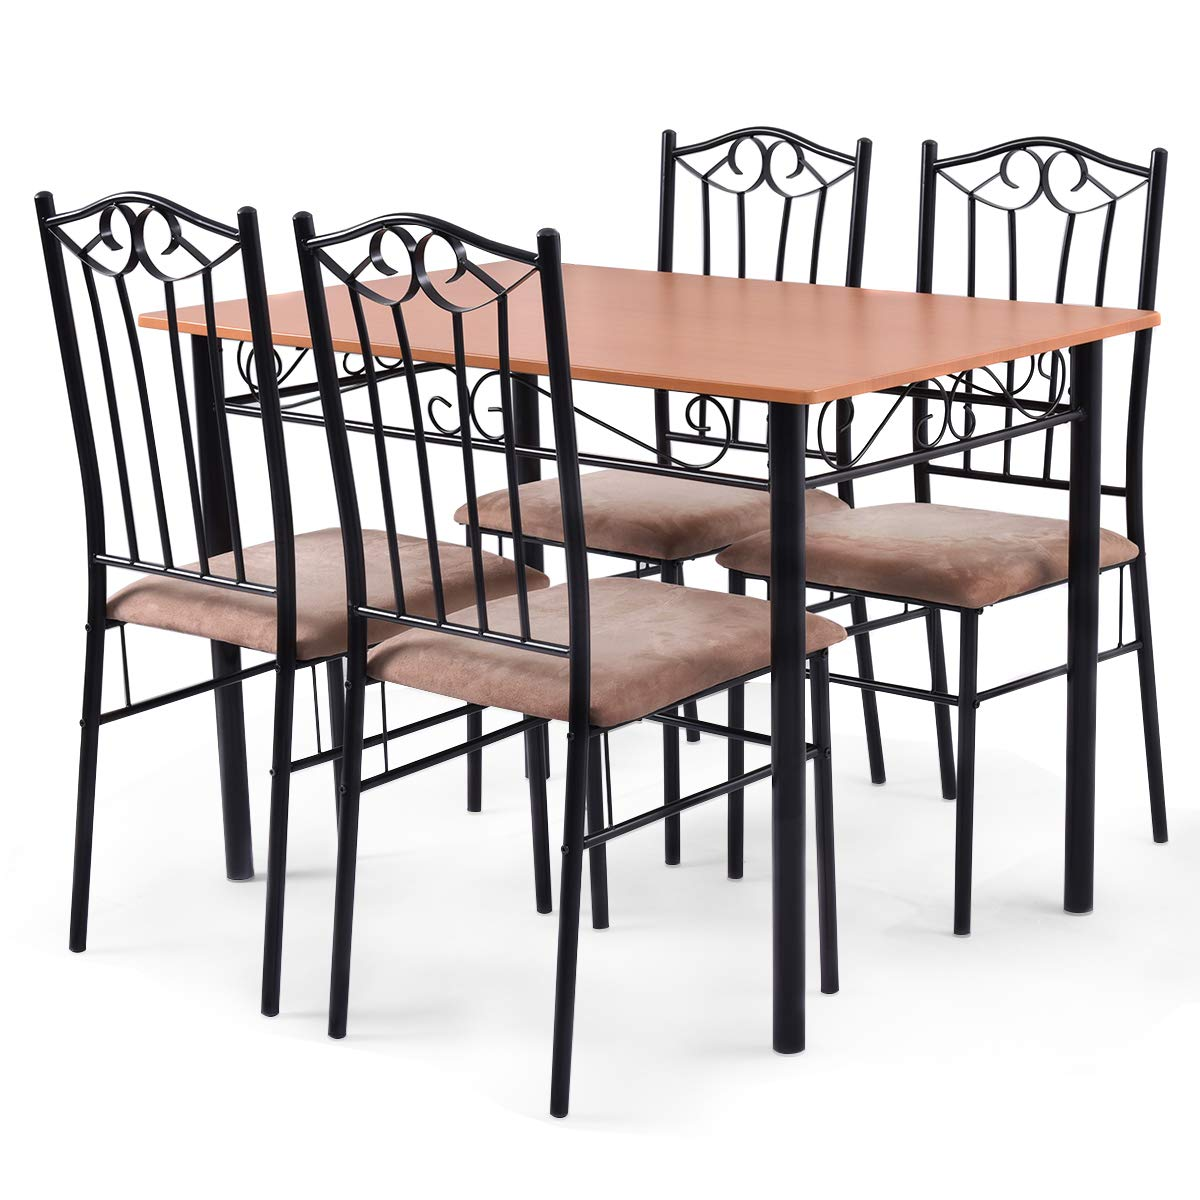 Tangkula 5 Piece Dining Table Set Vintage Wood Top Padded Seat Dining Table and Chairs Set Home Kitchen Dining Room Furniture by Tangkula (Image #6)